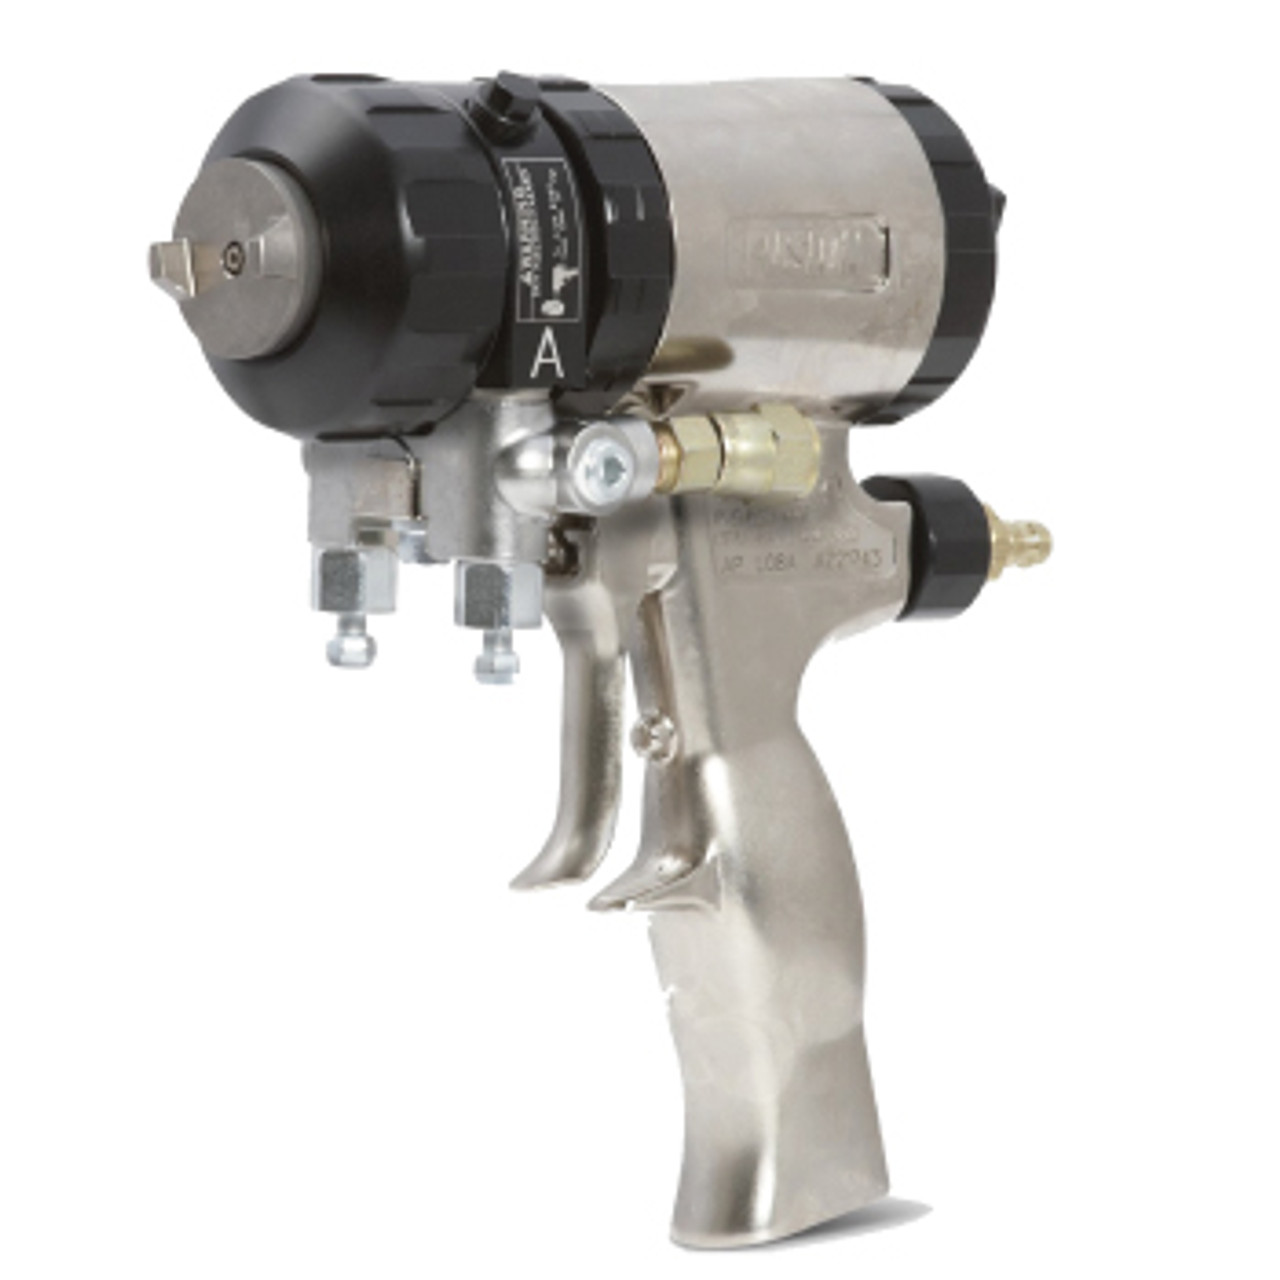 Graco Fusion Air Purge (AP) Spray Gun